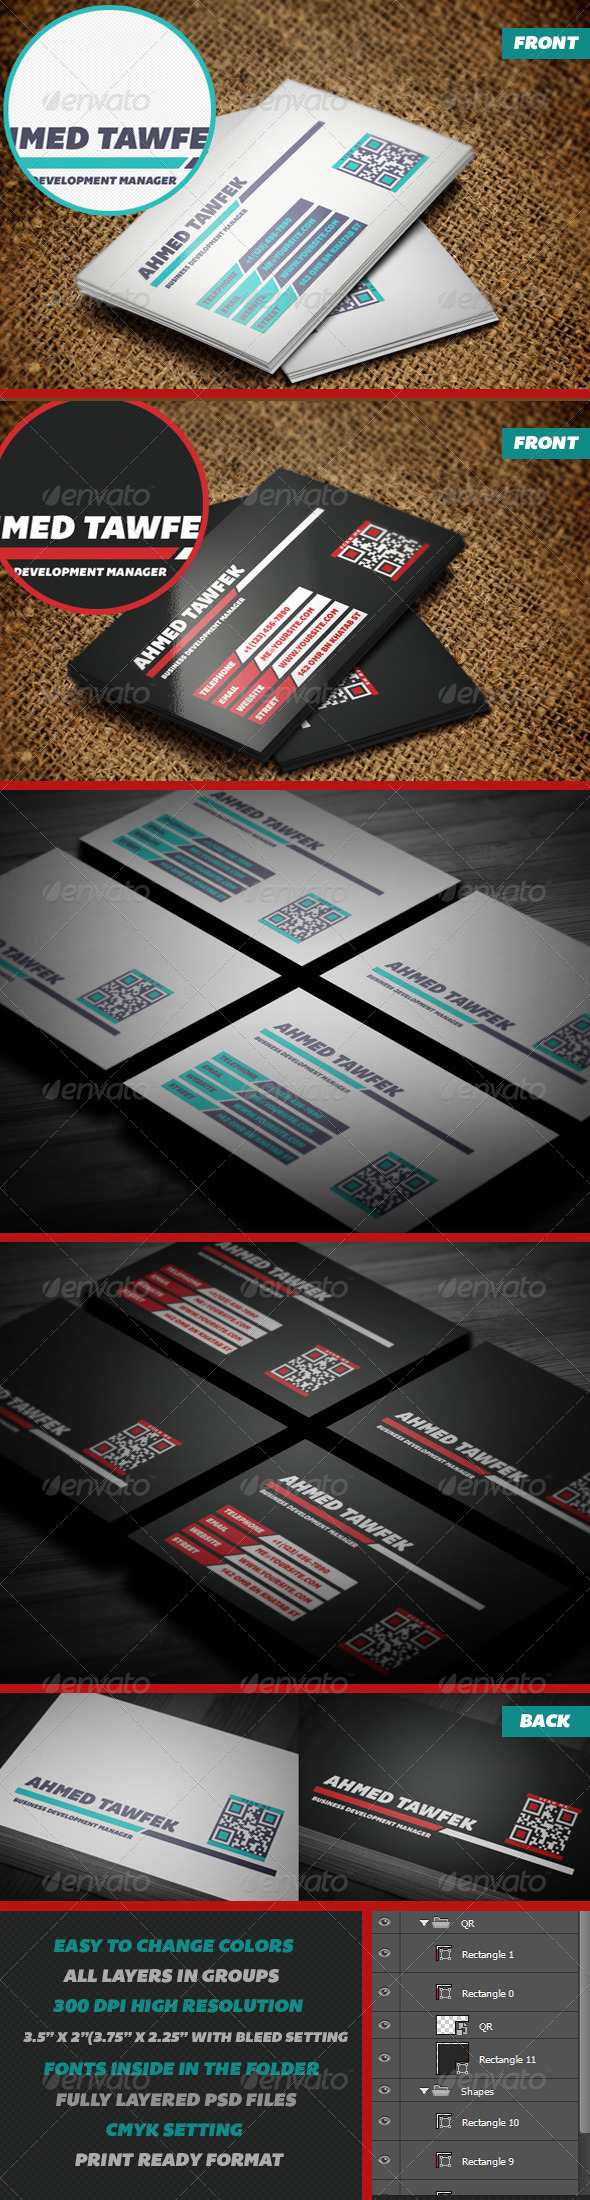 10 Creative Business Card - Creative Business Cards